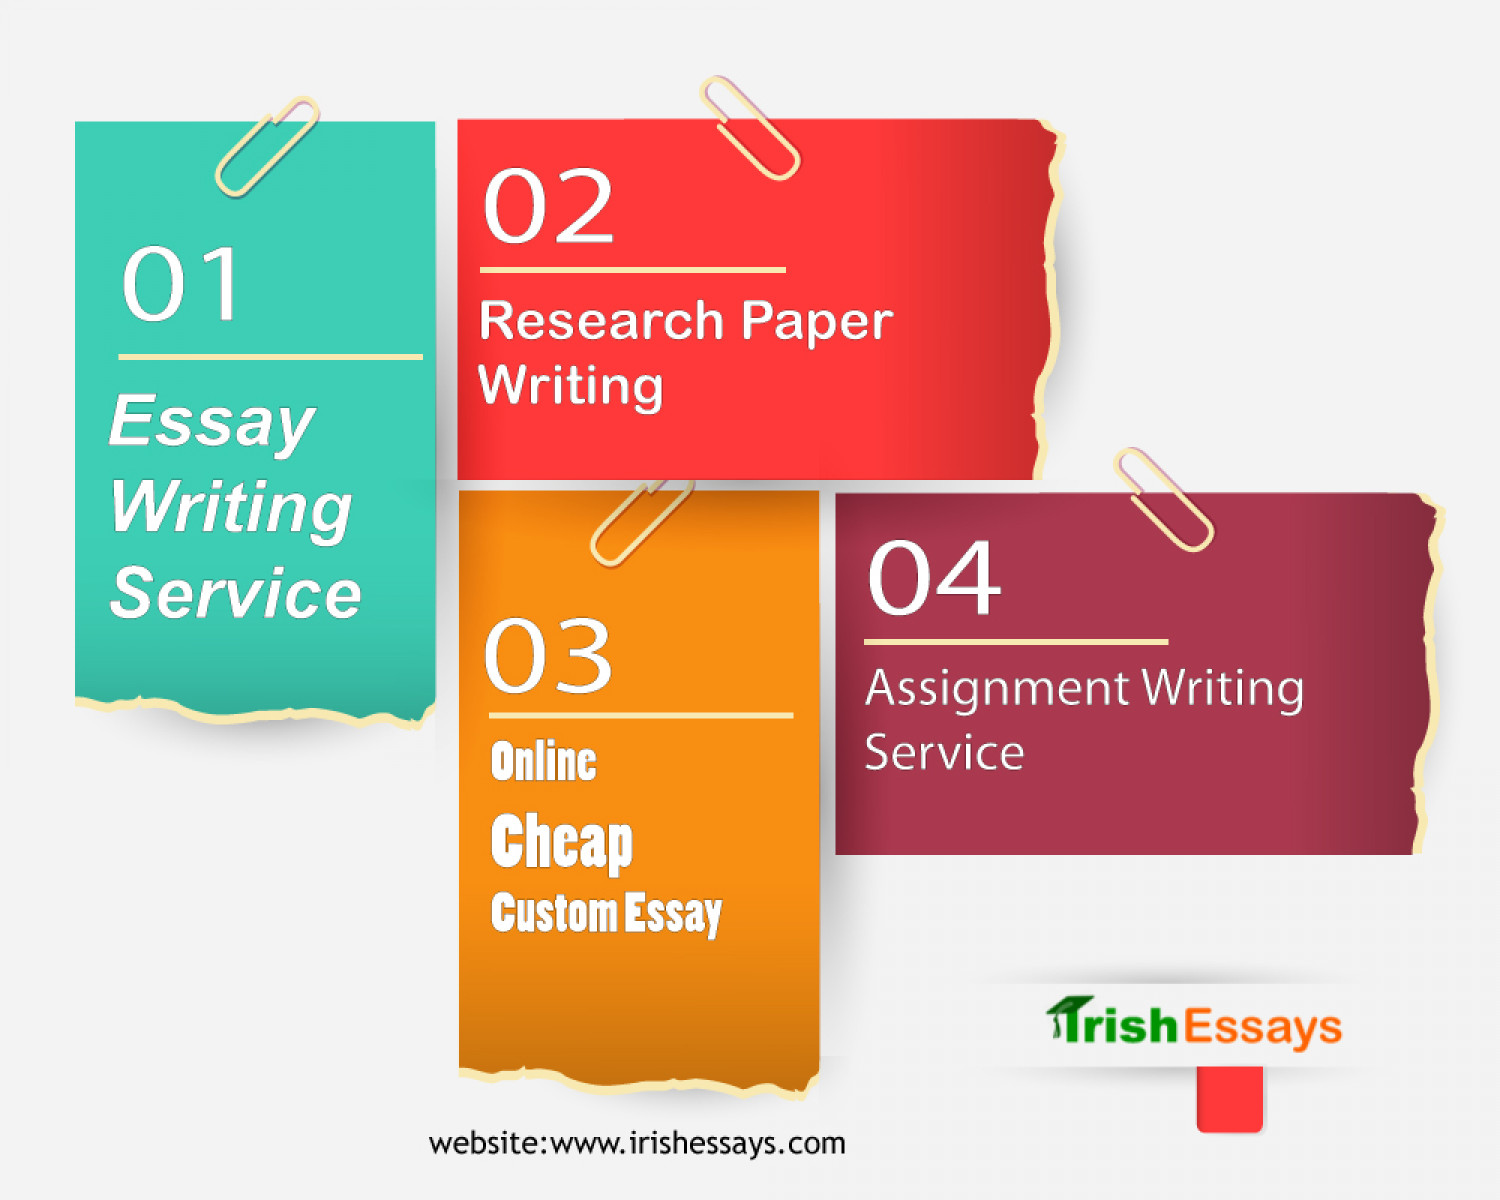 Who can i pay to write my essay: Order Custom Essay Online: www